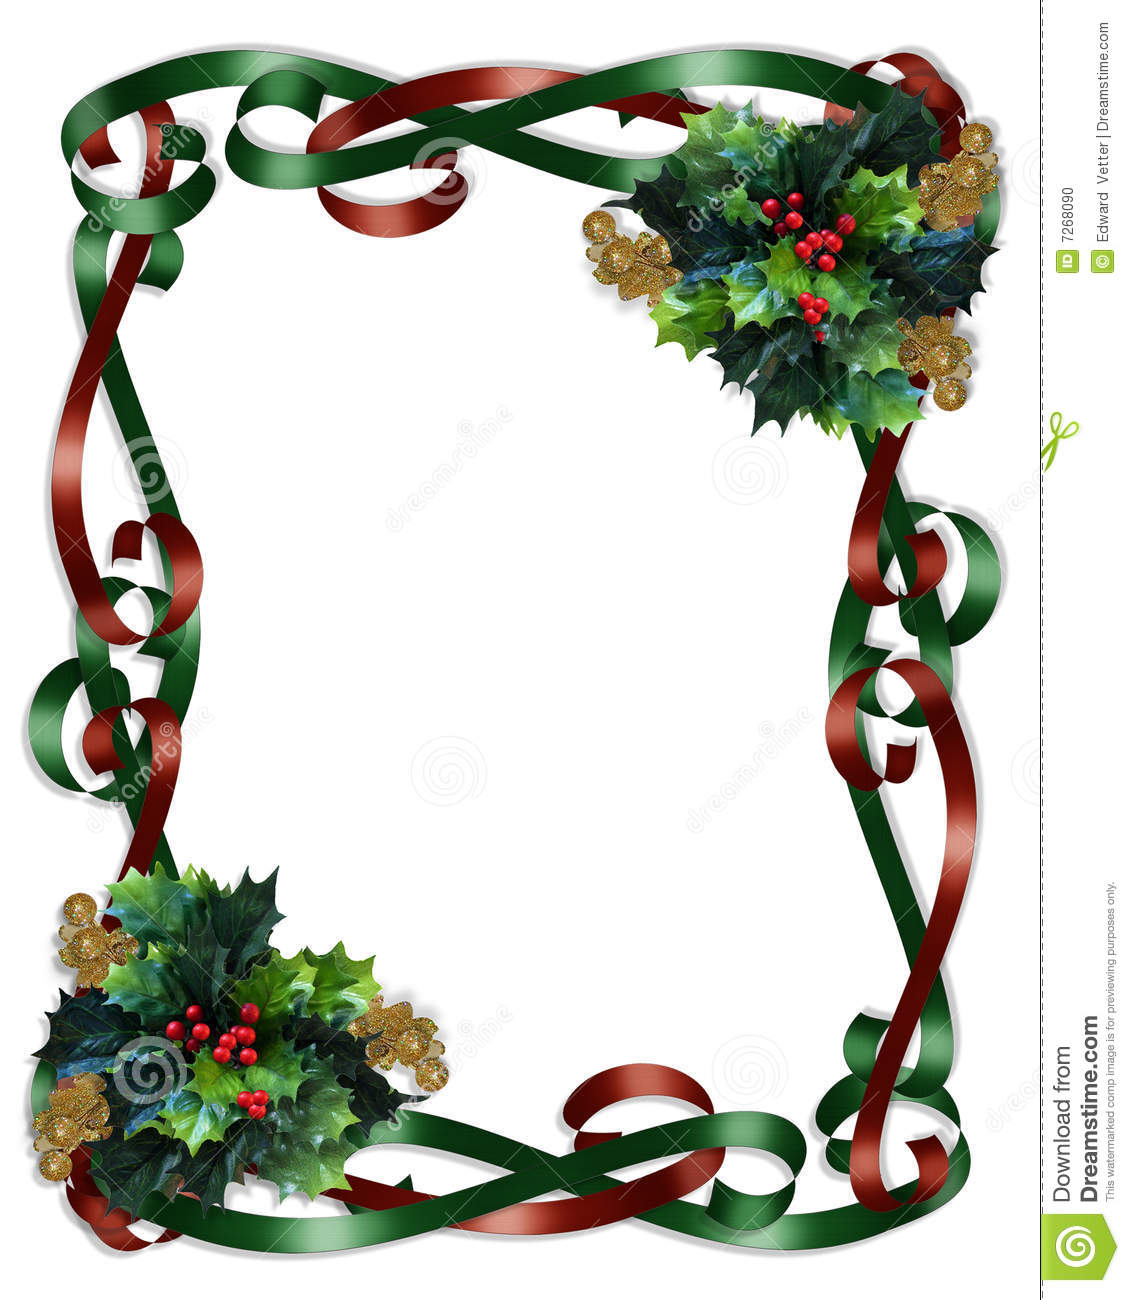 Christmas border ribbons and holly stock illustration